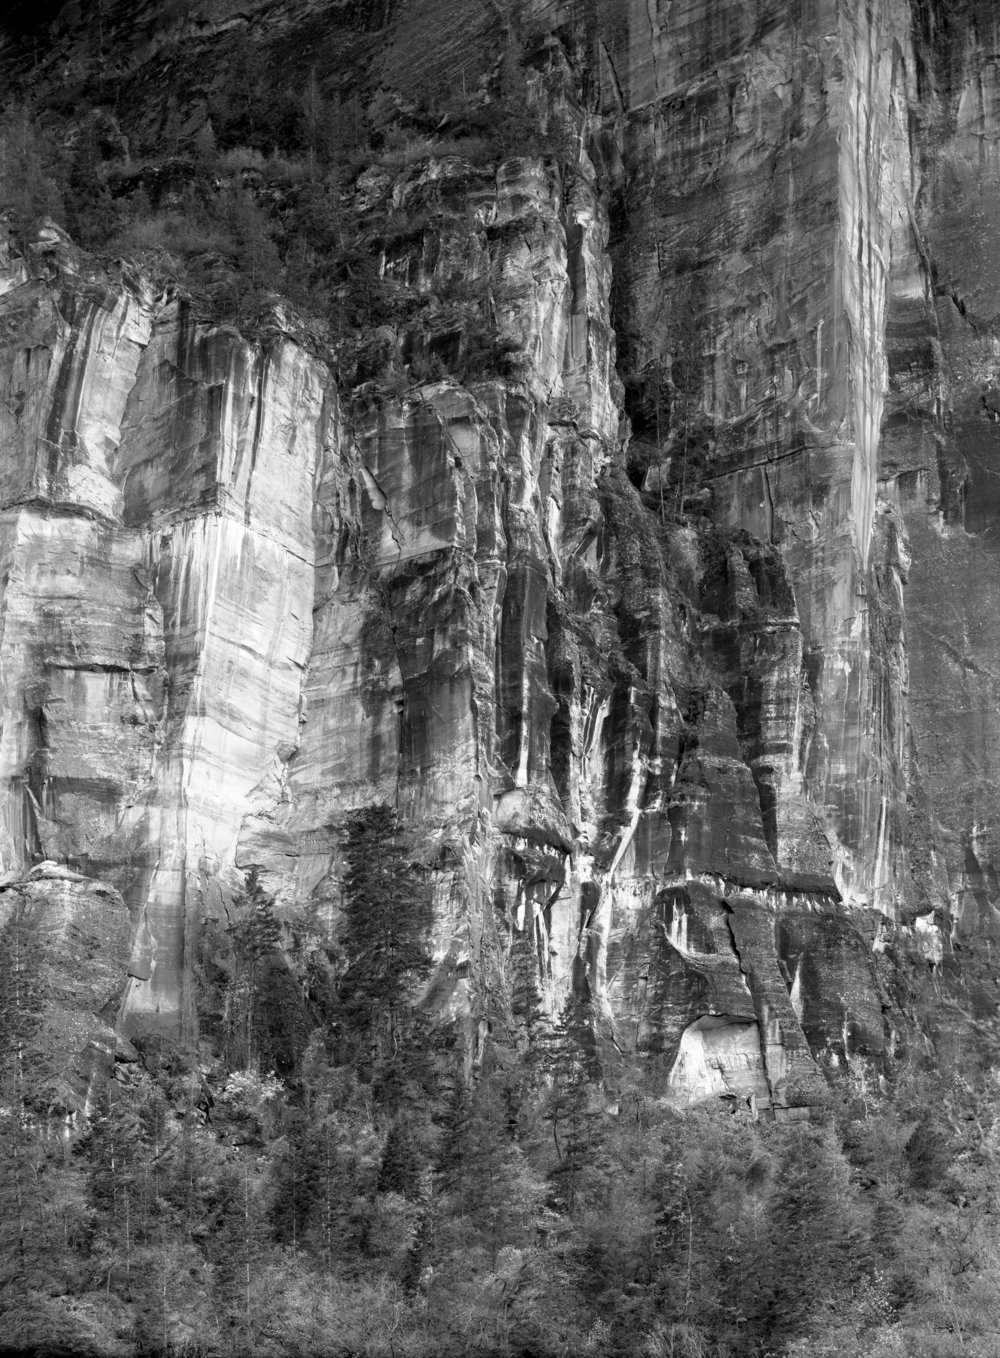 032_Zion_Mointainside.jpg